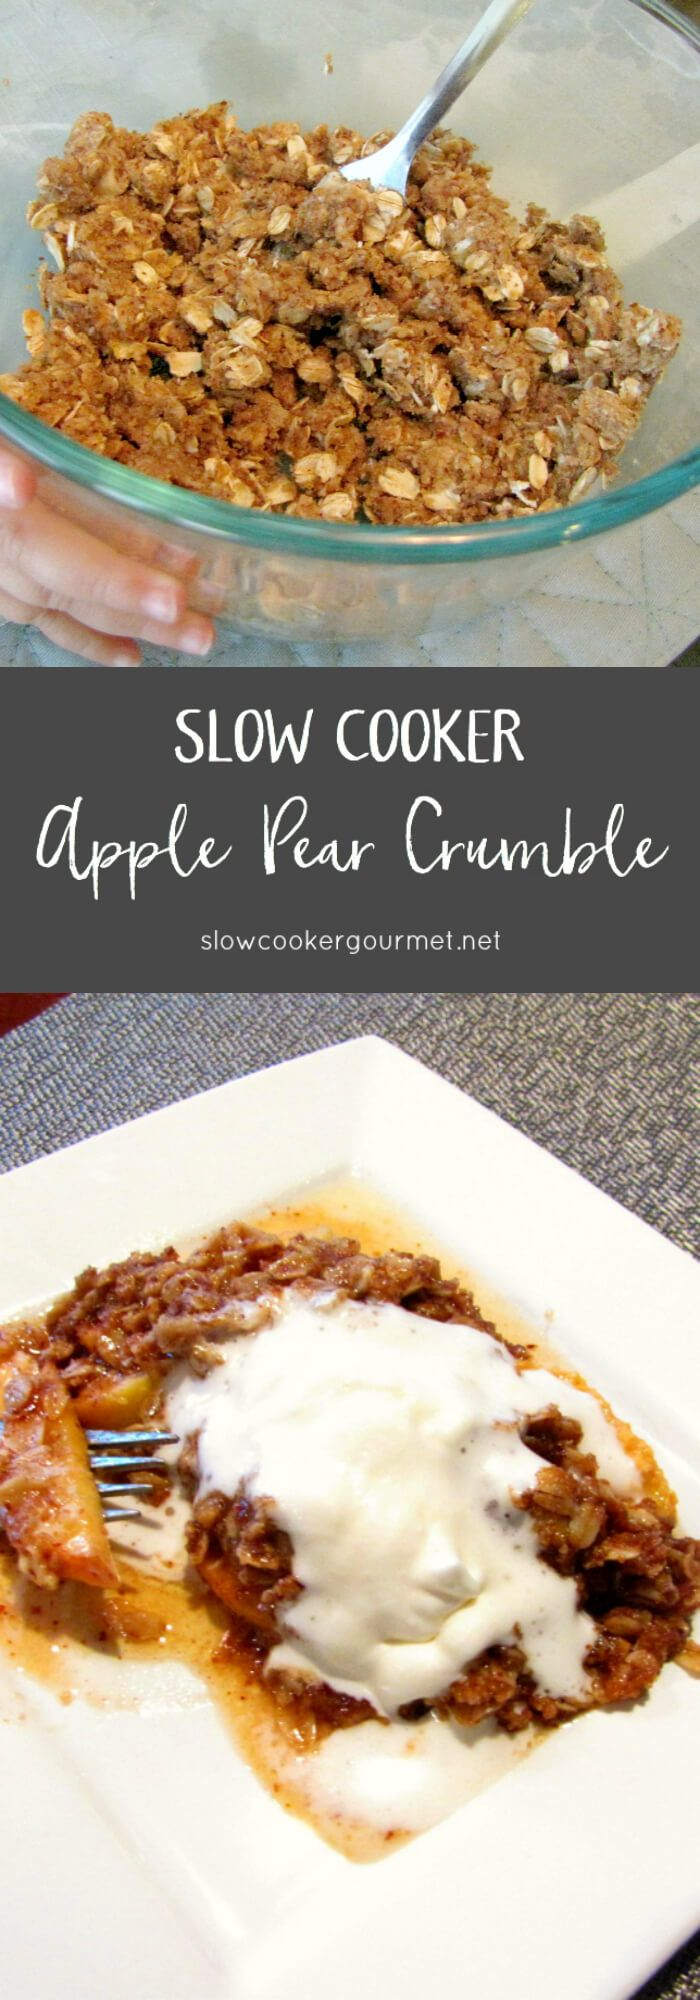 Peer Crumble Slow Cooker Apple Pear Crumble Slow Cooker Gourmet Slow Cooker